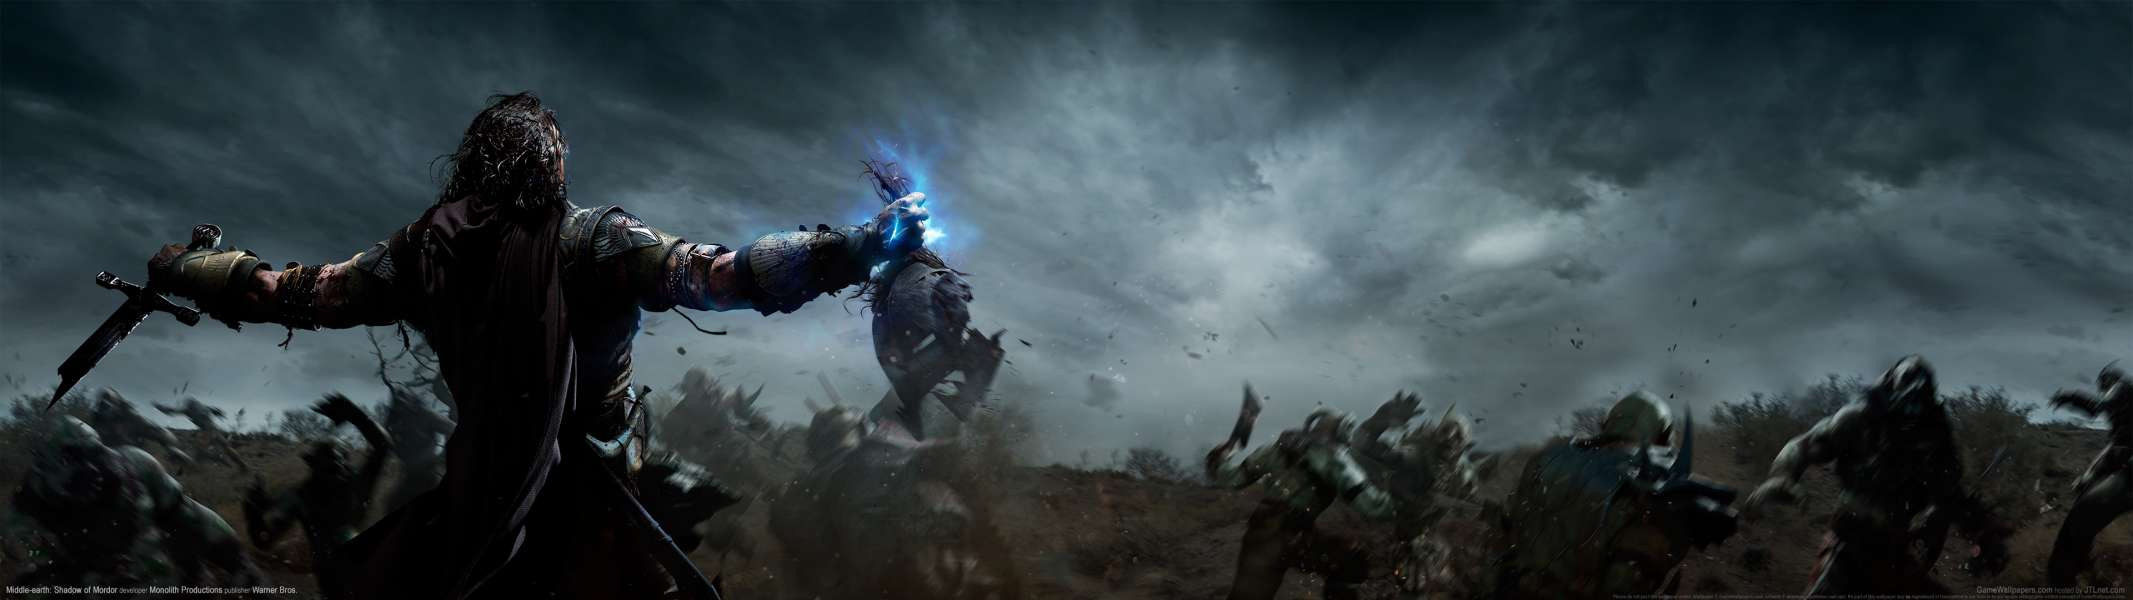 Middle-earth: Shadow of Mordor dual screen achtergrond